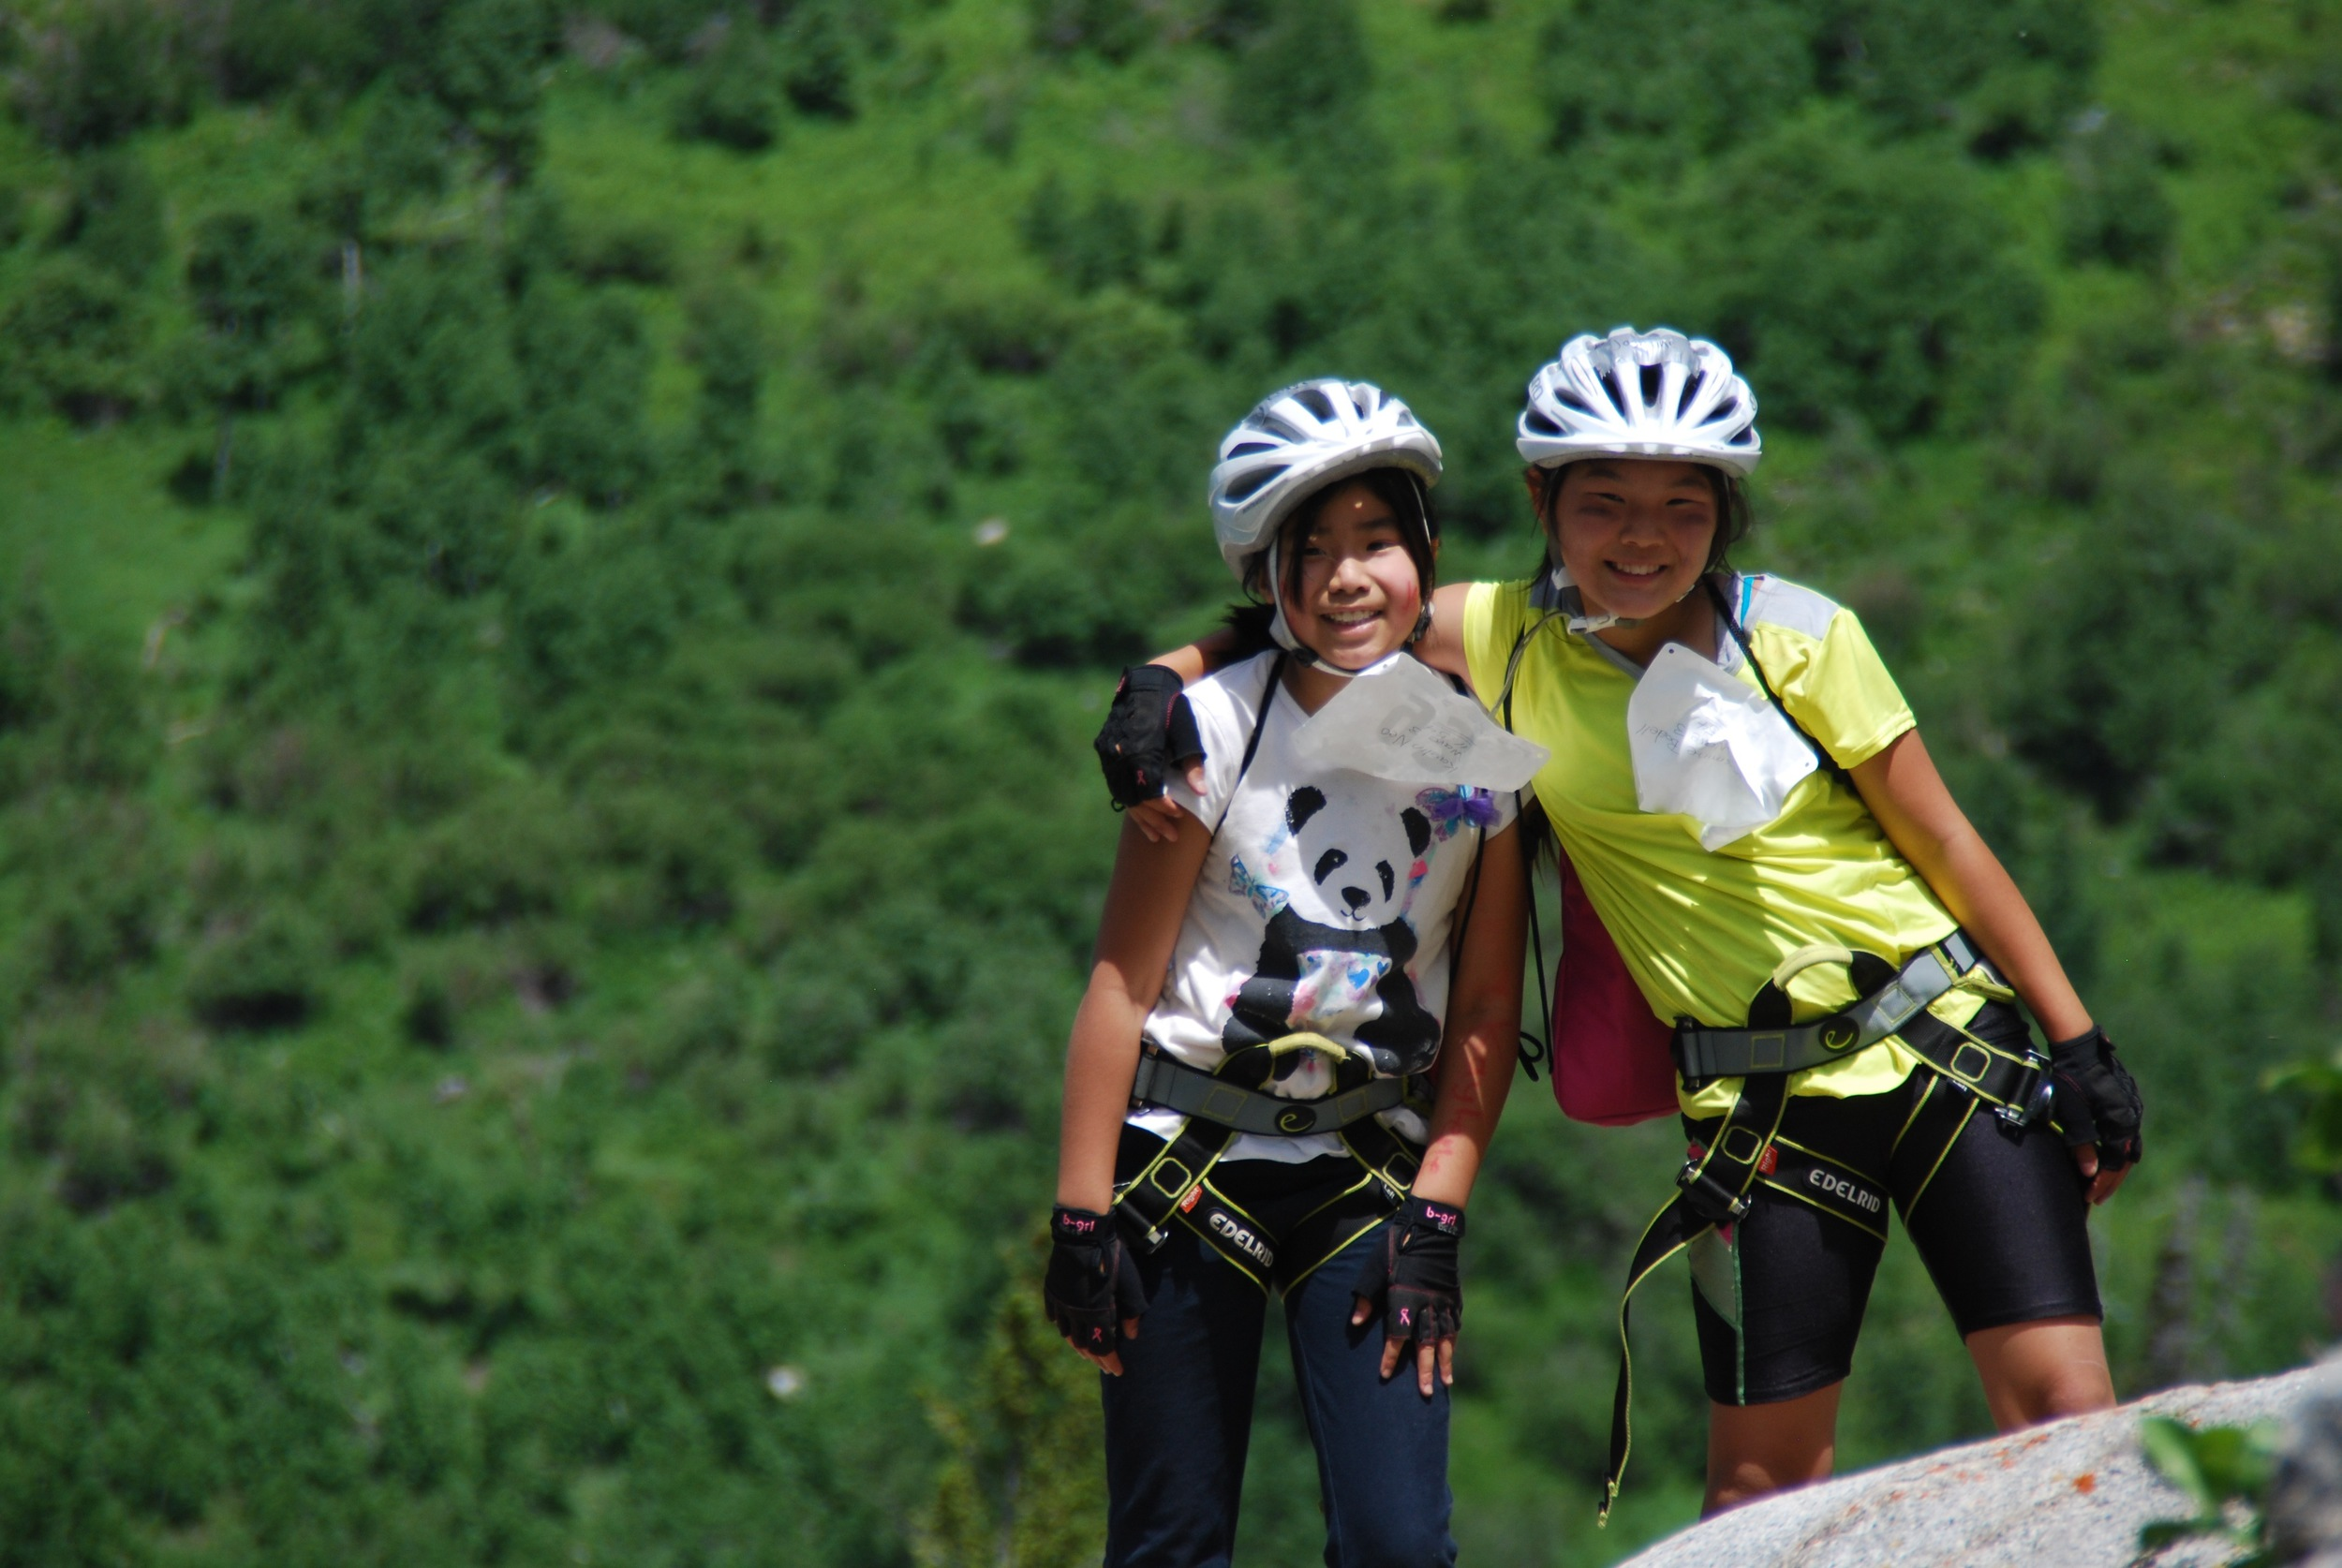 These two BGC Provo club members had a great time competing in the Kids Adventure Games!